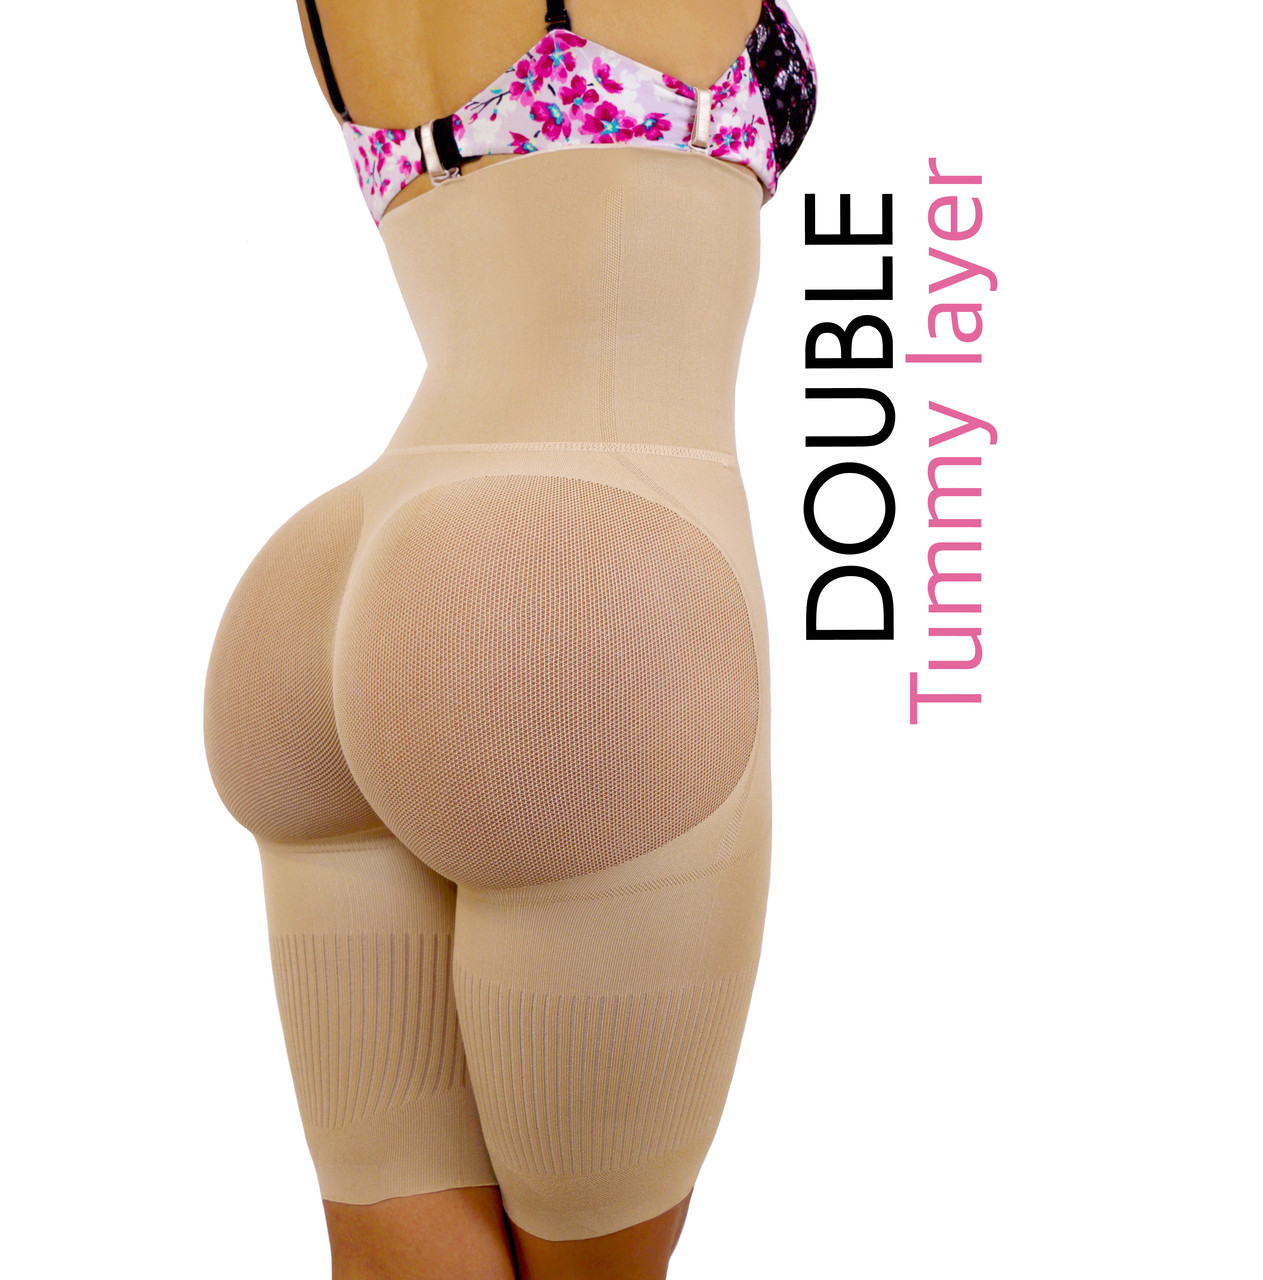 3417e7720b Happy Butt N°7 Double Tummy Layer - YAHAIRA INC